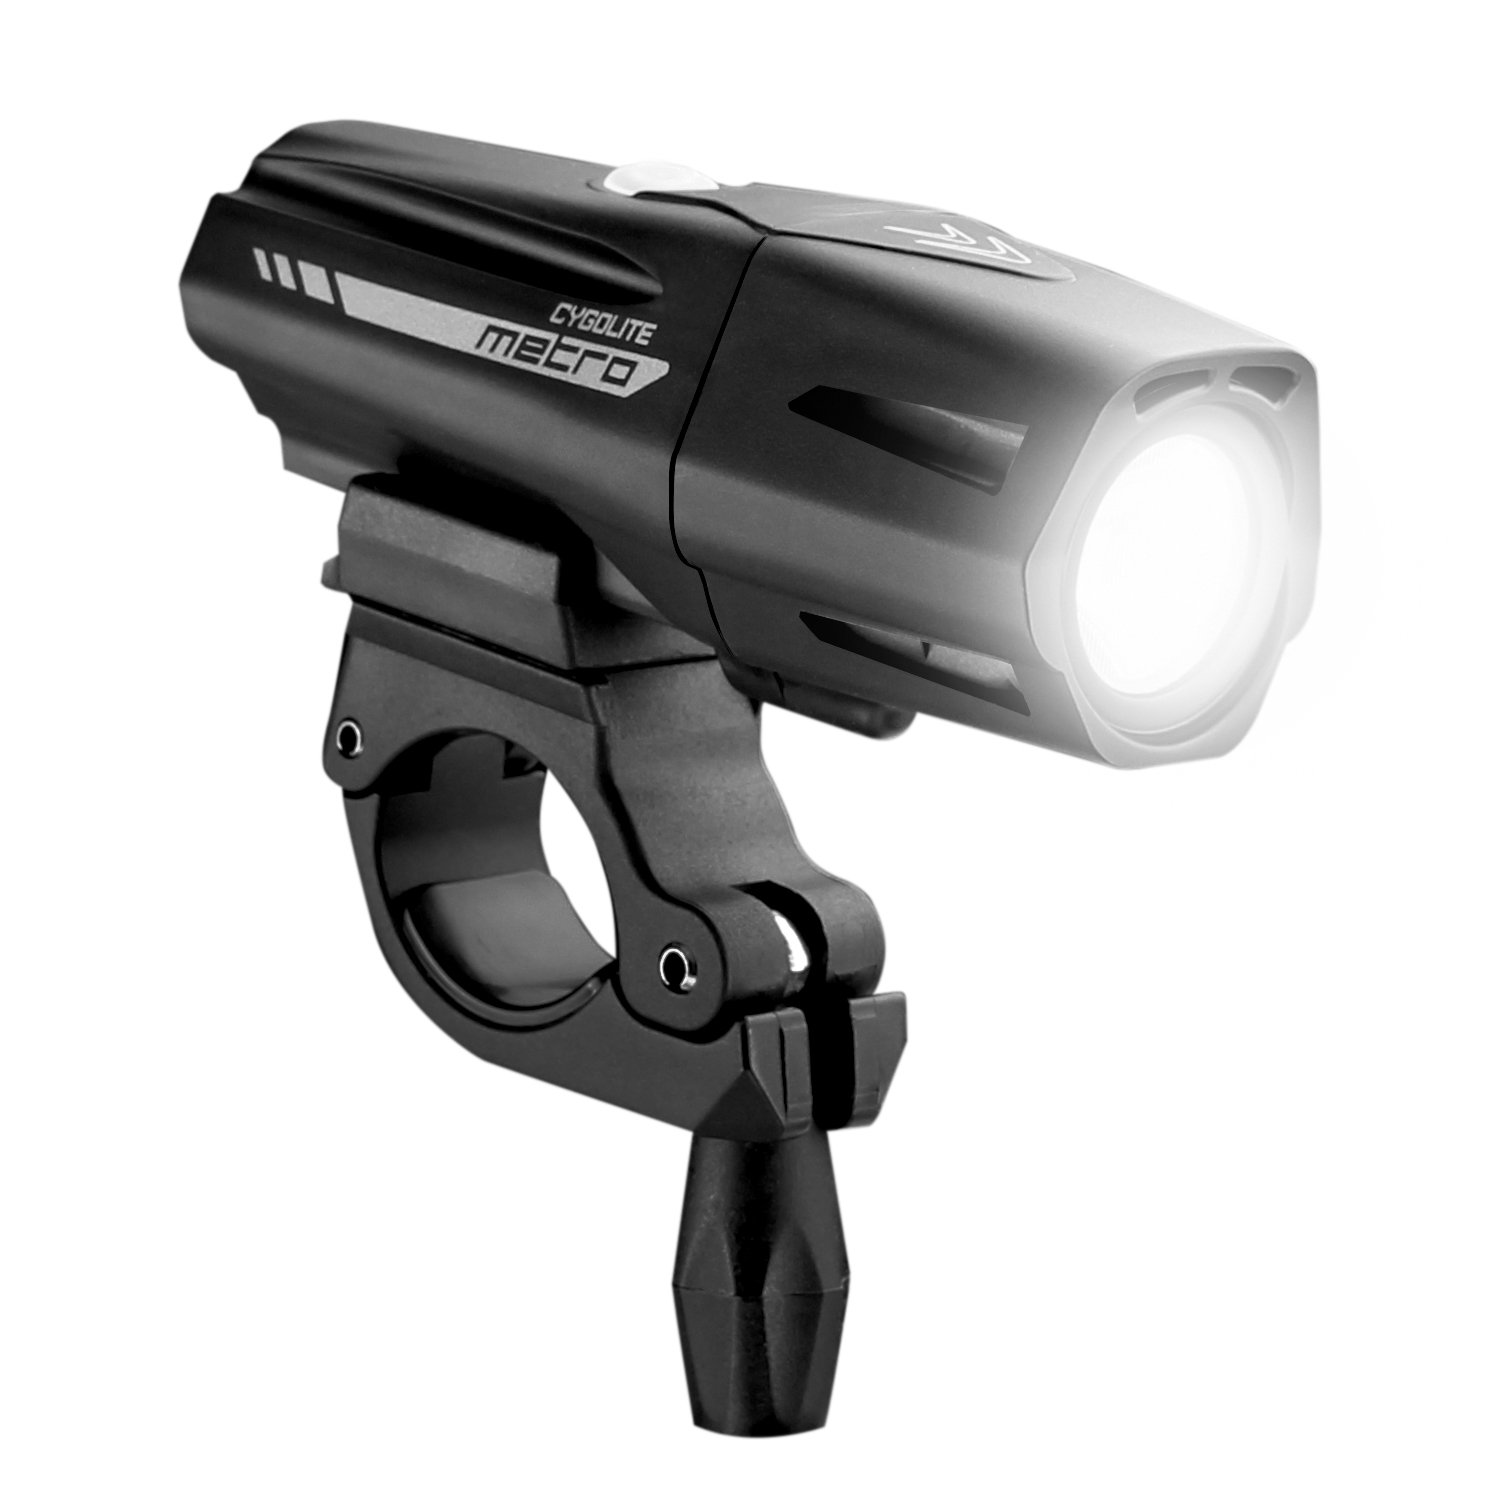 Cygolite MTR-650-USB Metro Plus Rechargeable Bike Headlight